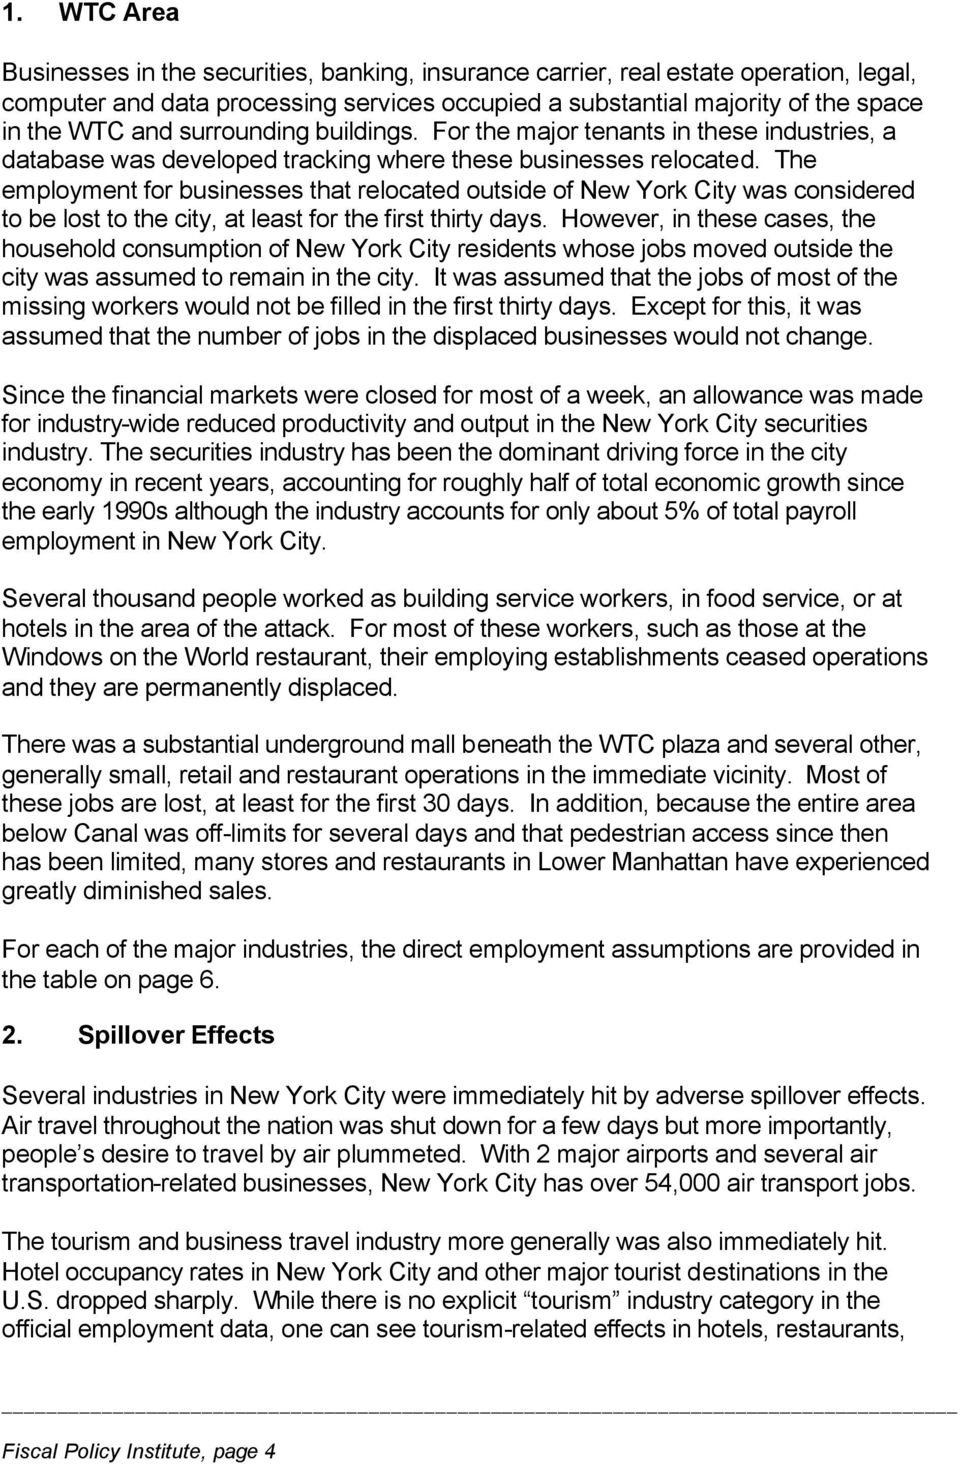 The employment for businesses that relocated outside of New York City was considered to be lost to the city, at least for the first thirty days.